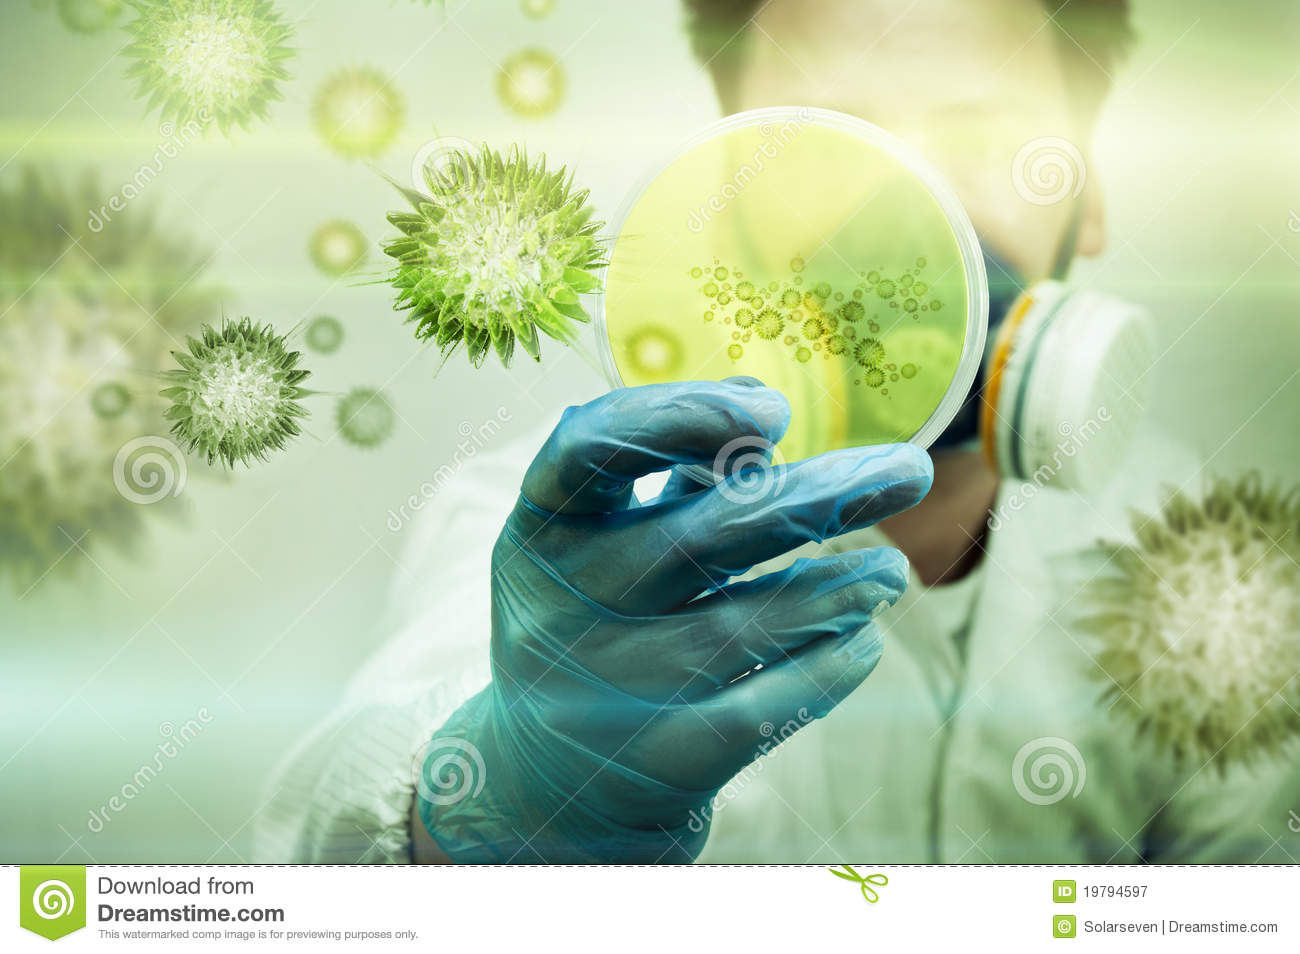 Science And Life Royalty Free Stock Photography - Image: 19794597